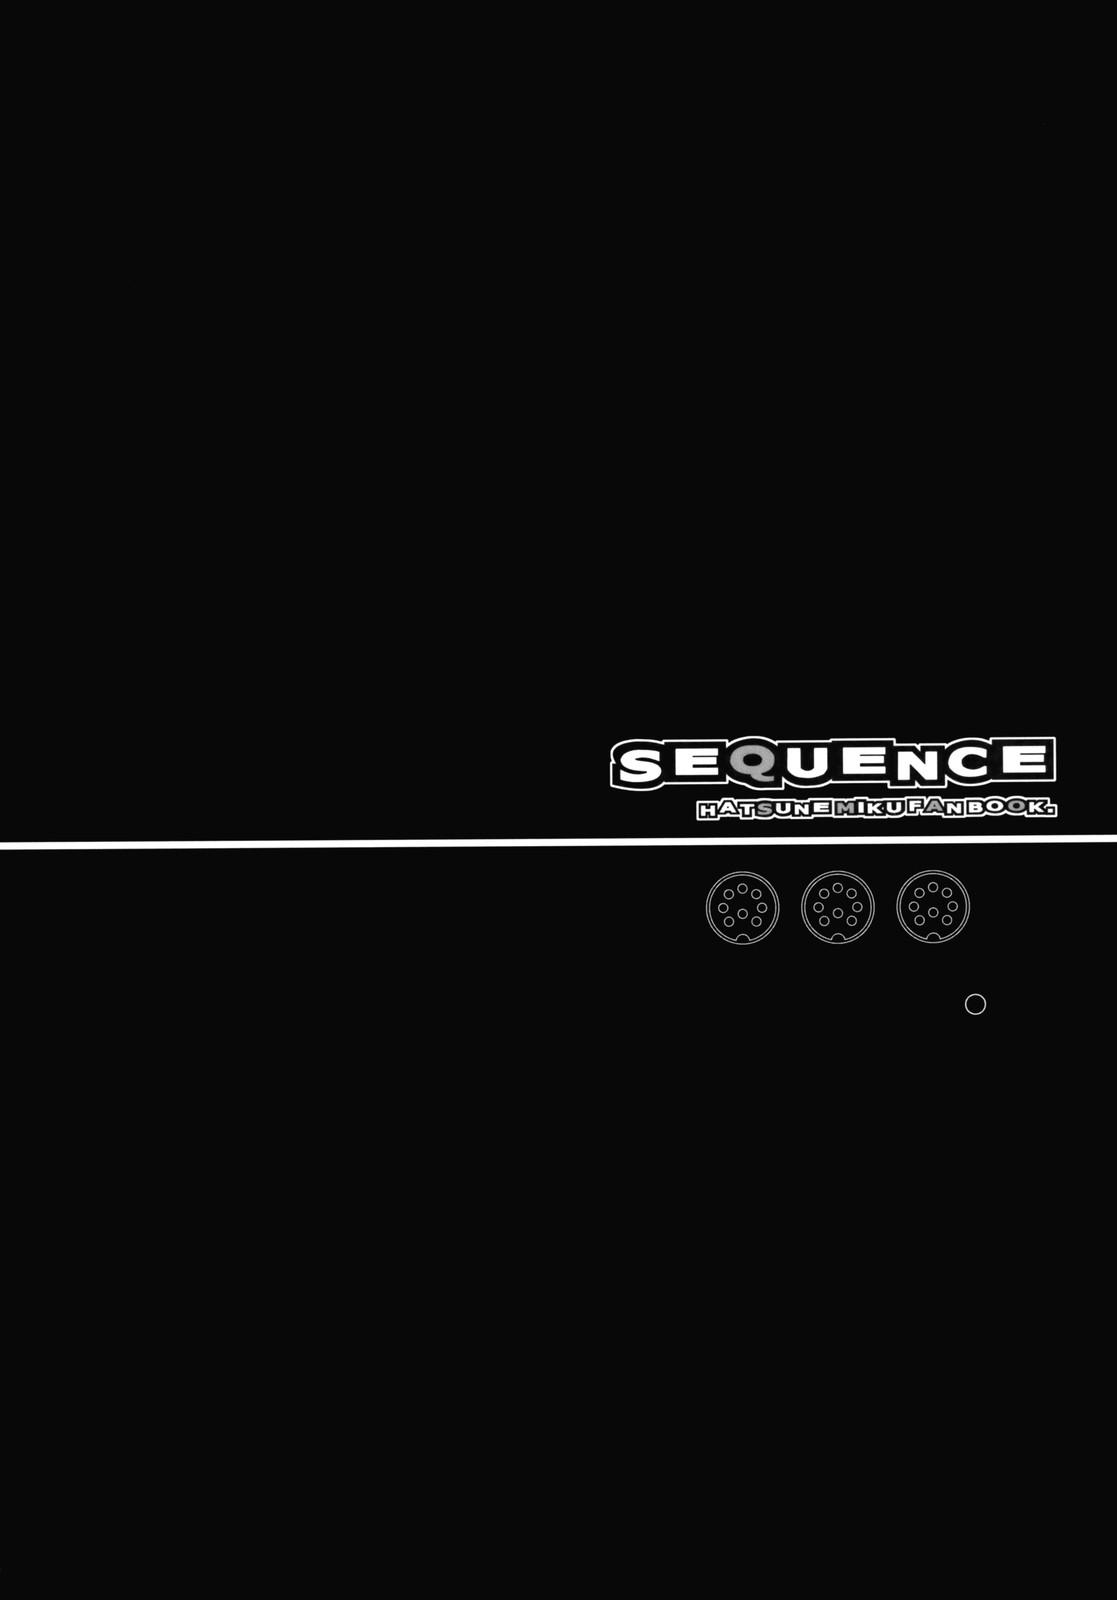 SEQUENCE 4